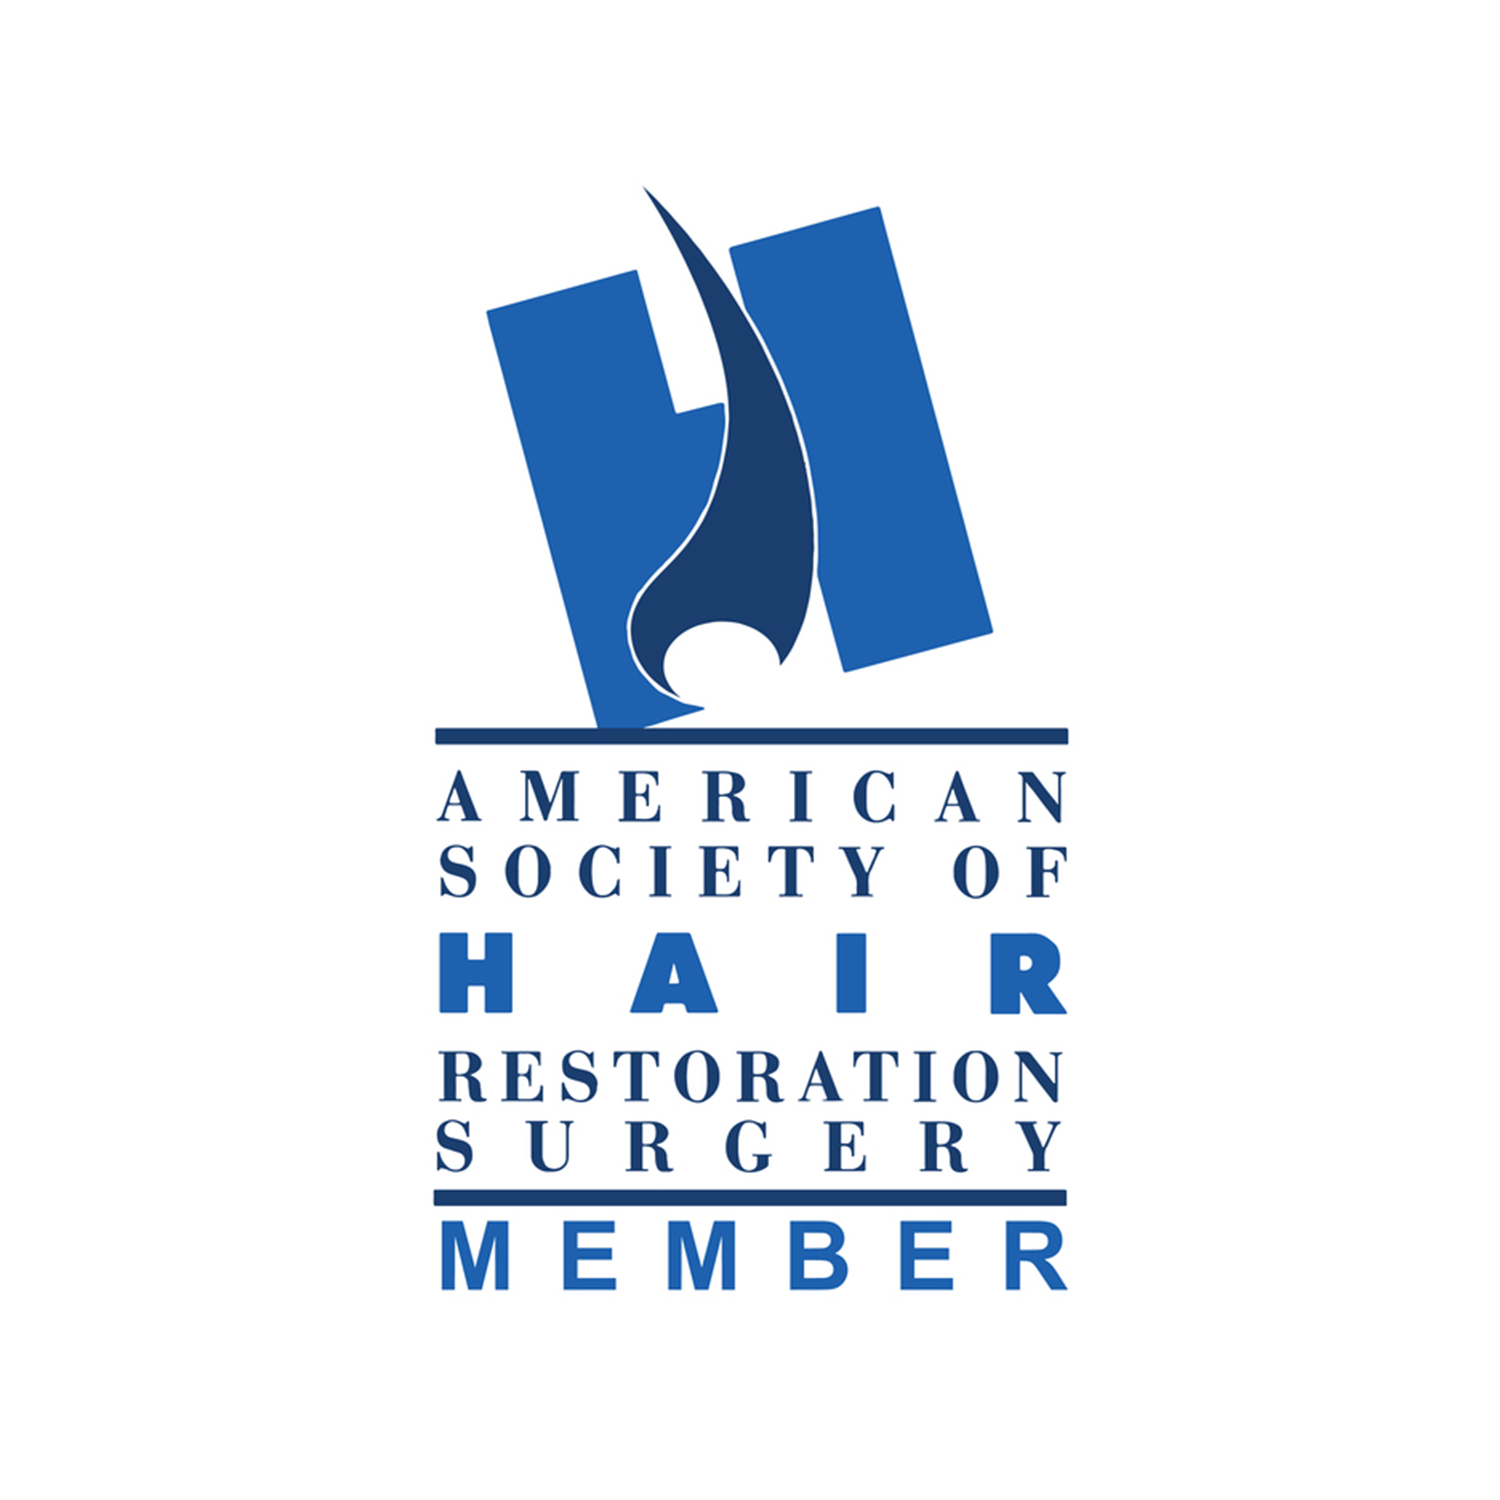 American Society of Hair Restoration Surgery